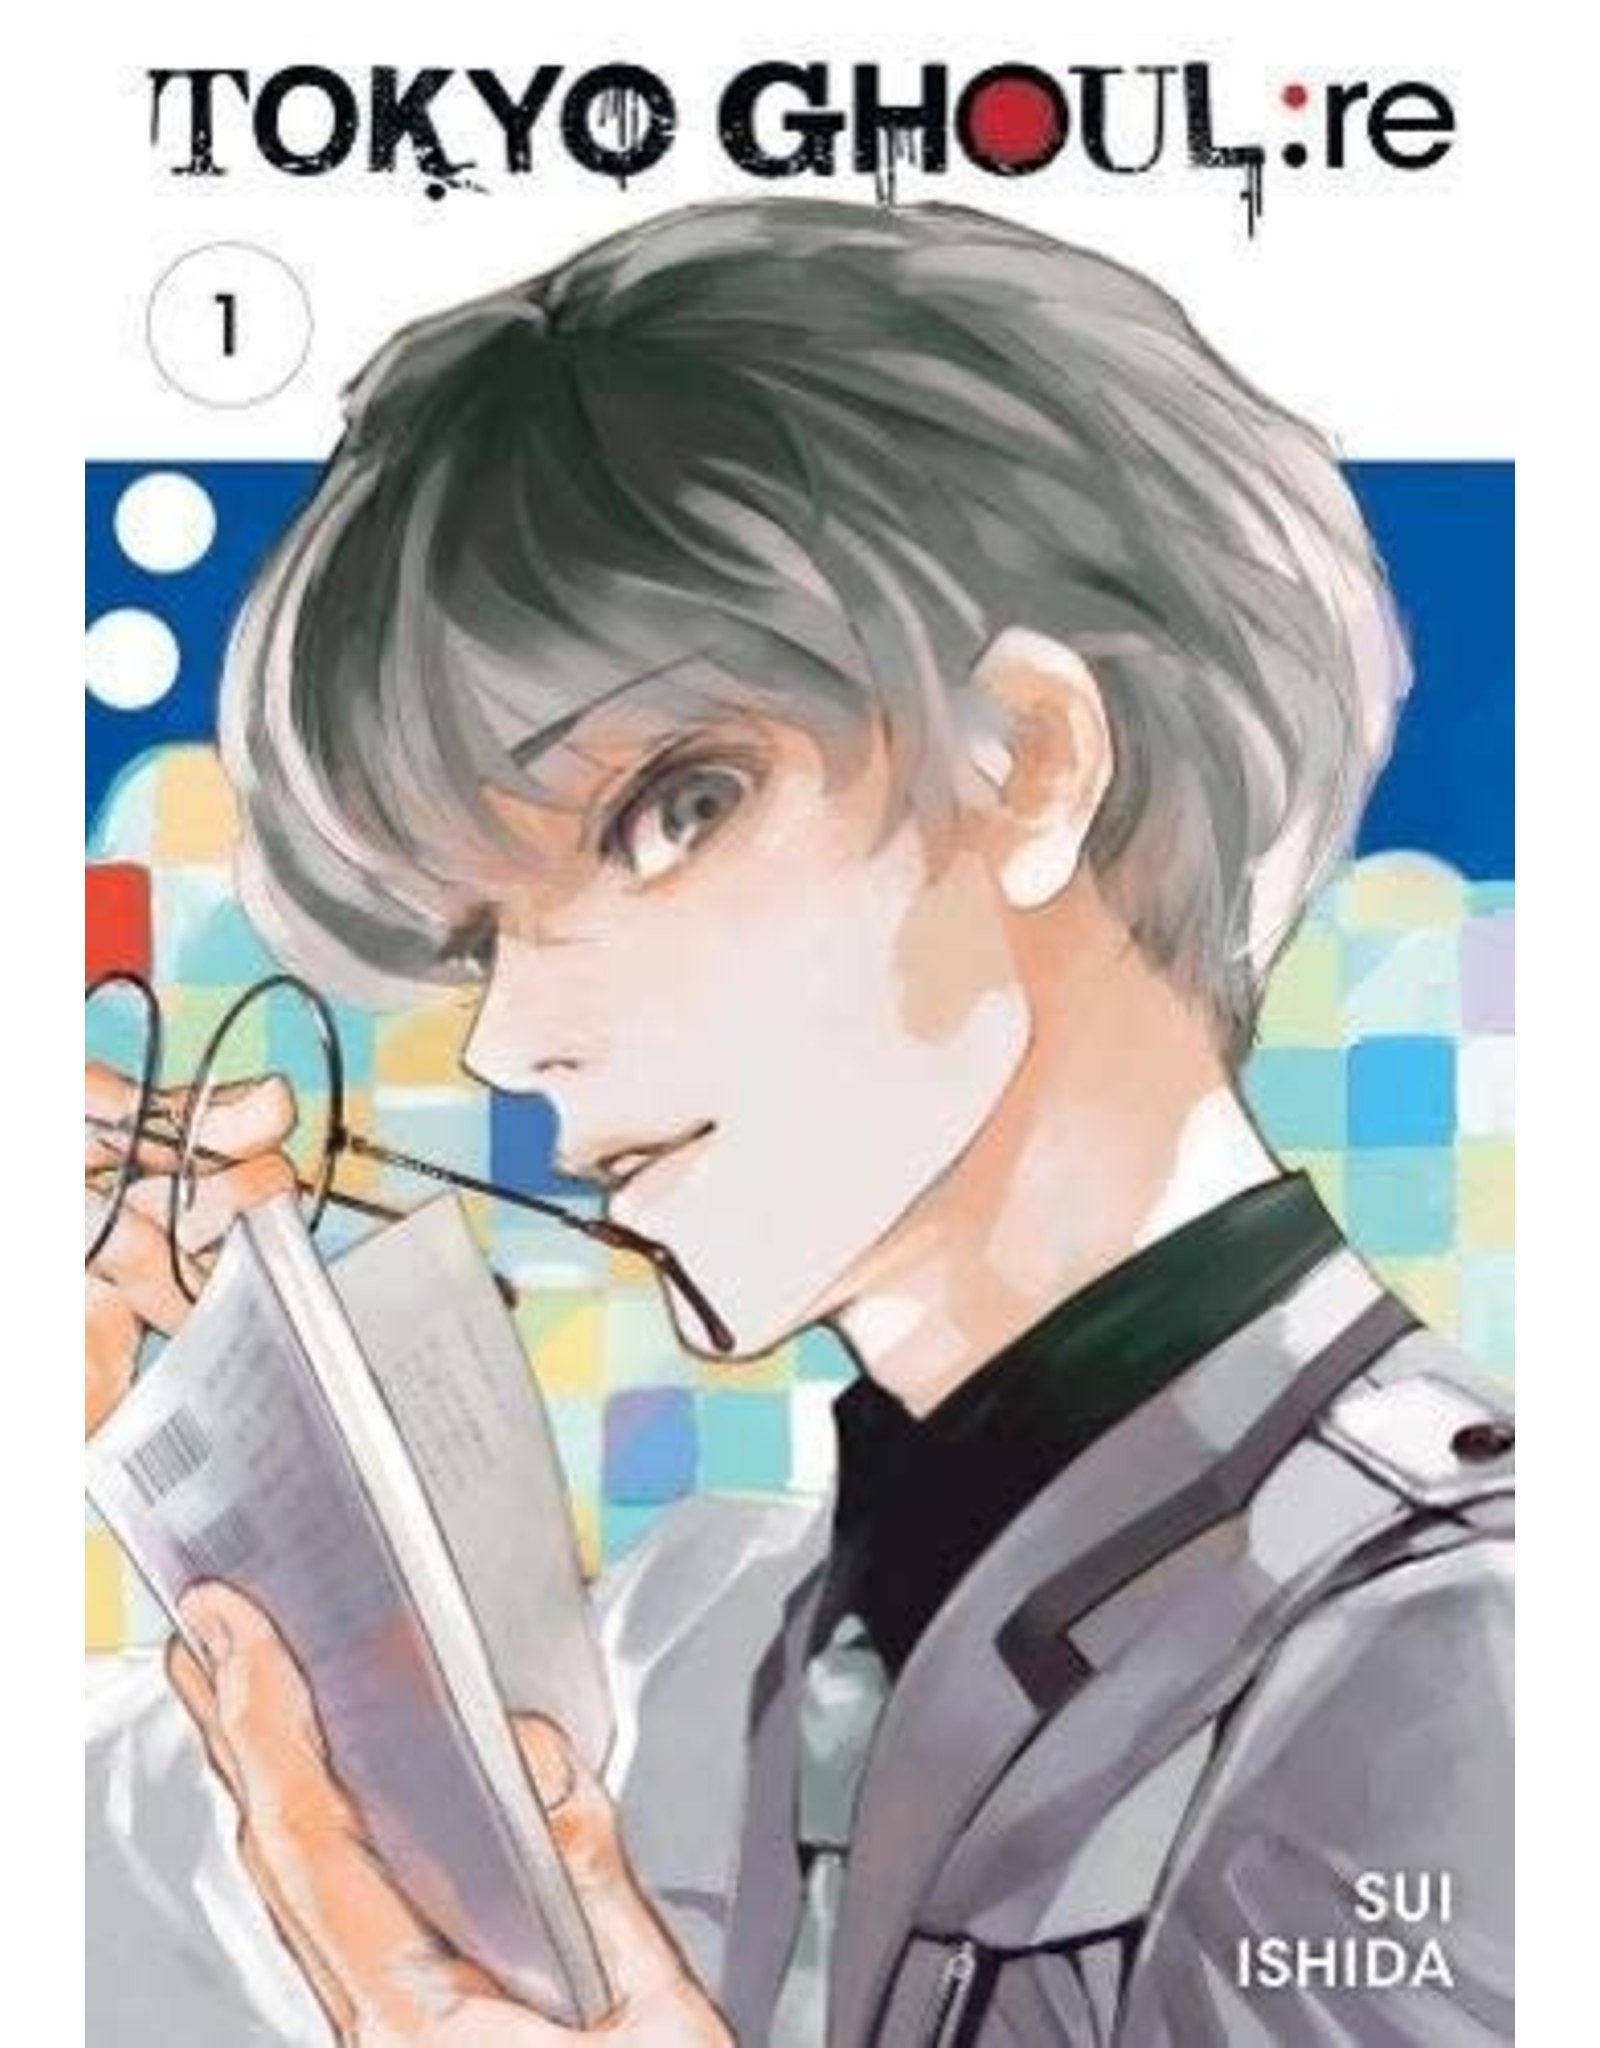 Tokyo Ghoul:re 01 (English Version)